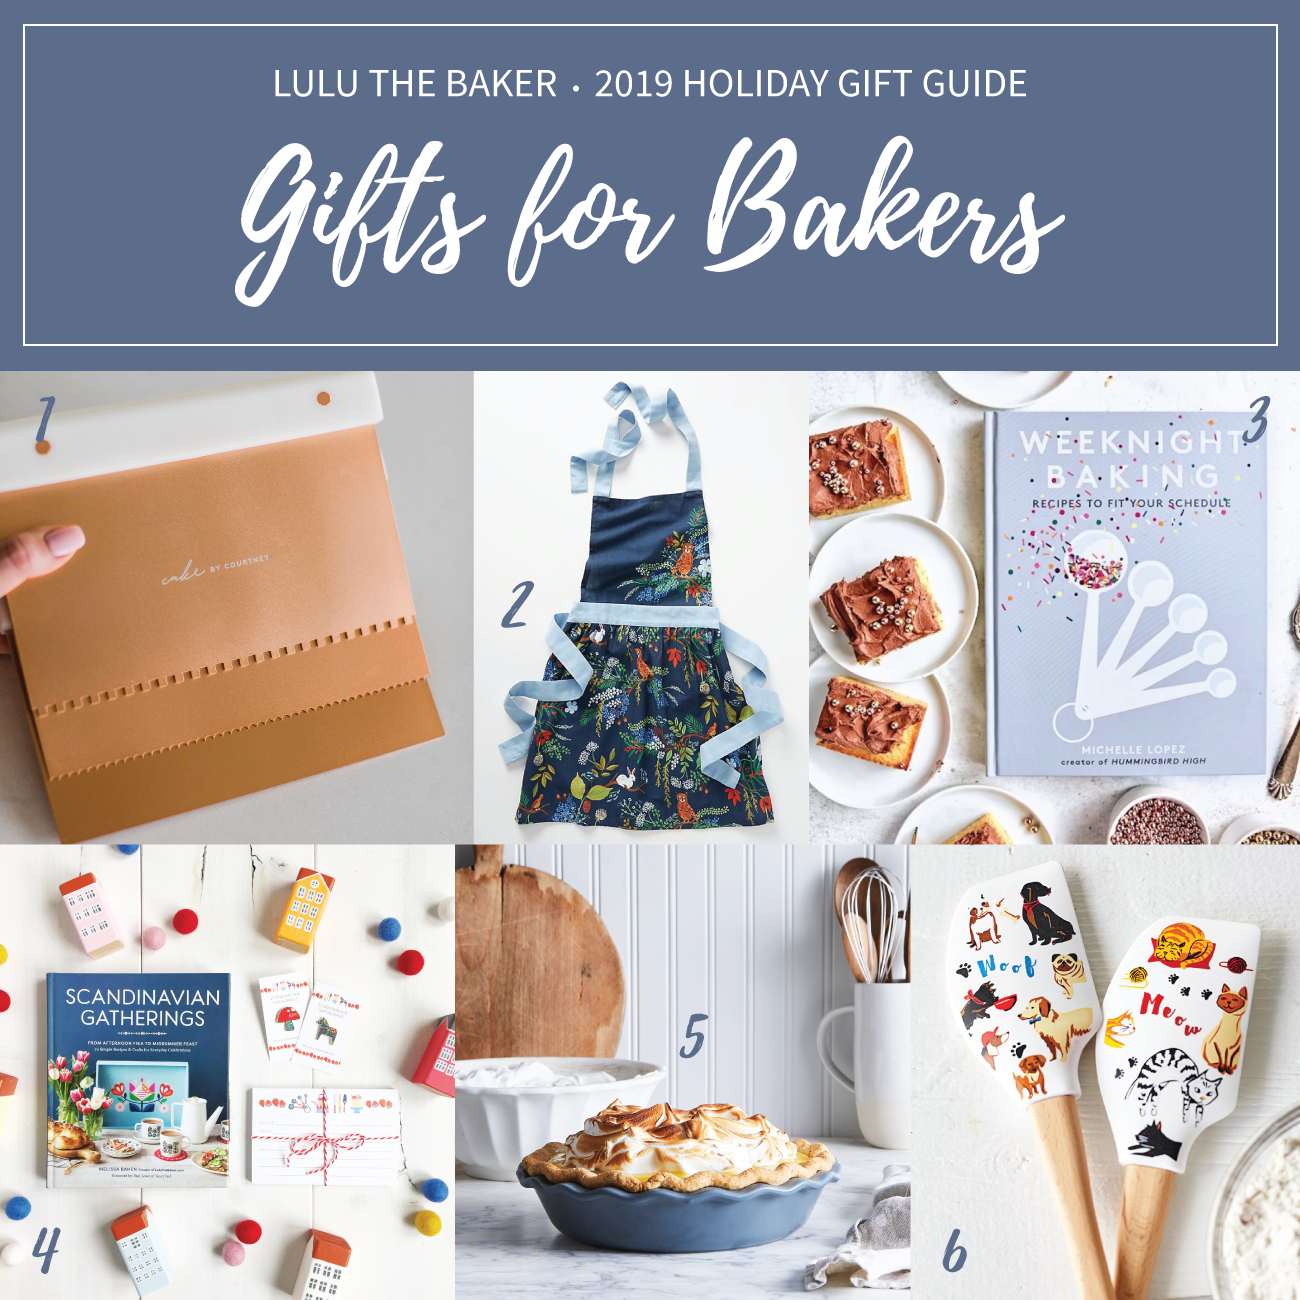 I've rounded up some of my favorite gifts for bakers! All of these items are ones I have and love or would love to have in my kitchen!